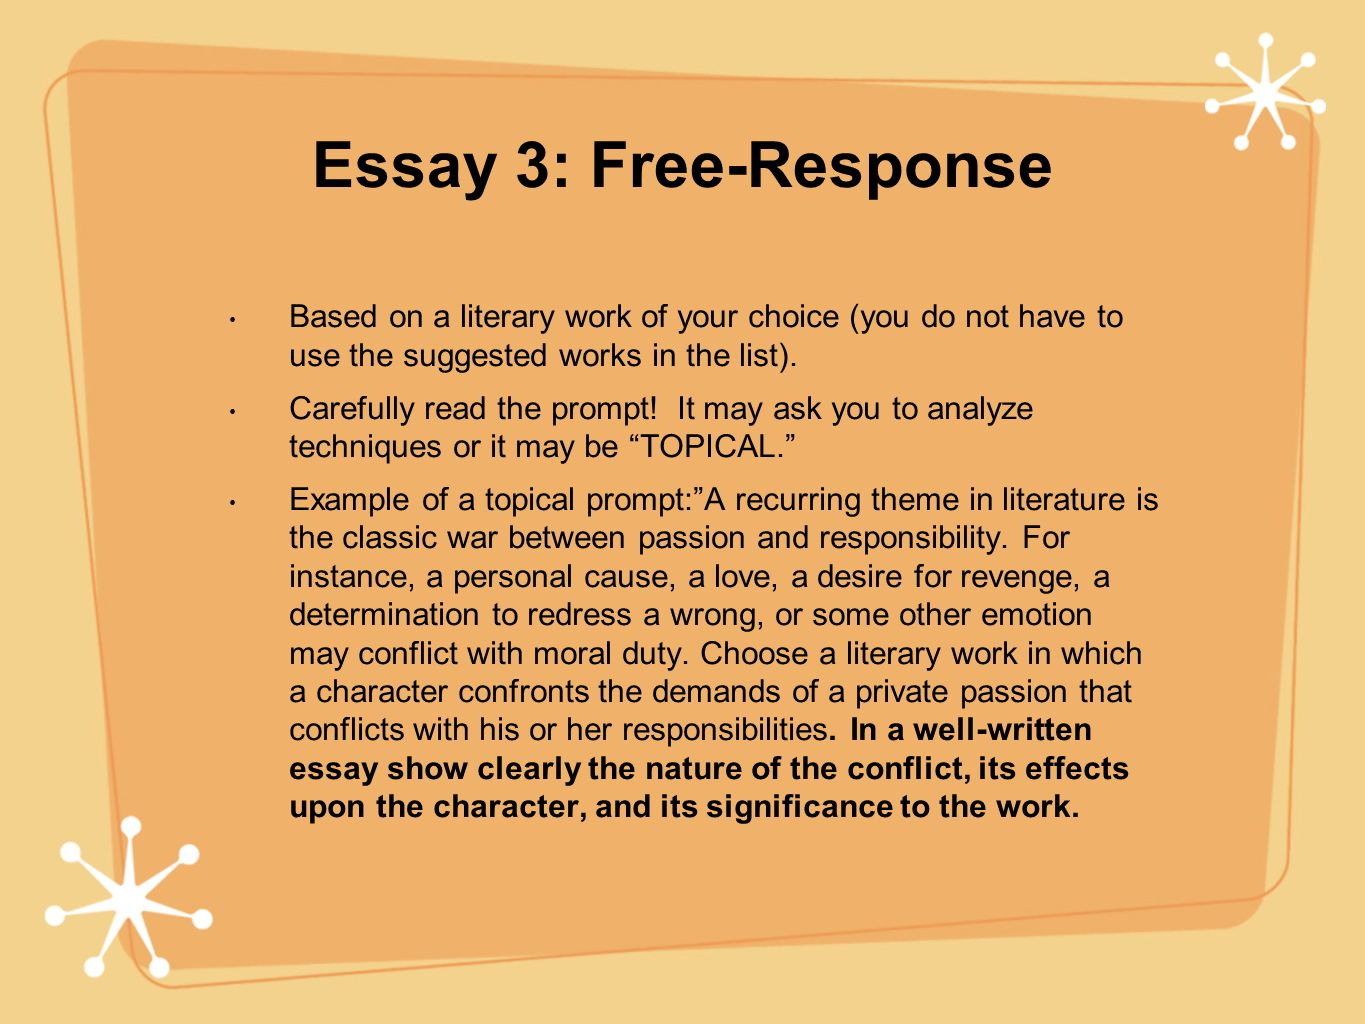 ap english essay writing Writing a thesis for an ap world history essay is a little different from other theses you may have learned to write in english or oral communications luckily, there is a basic format you can use for each of the three essays.